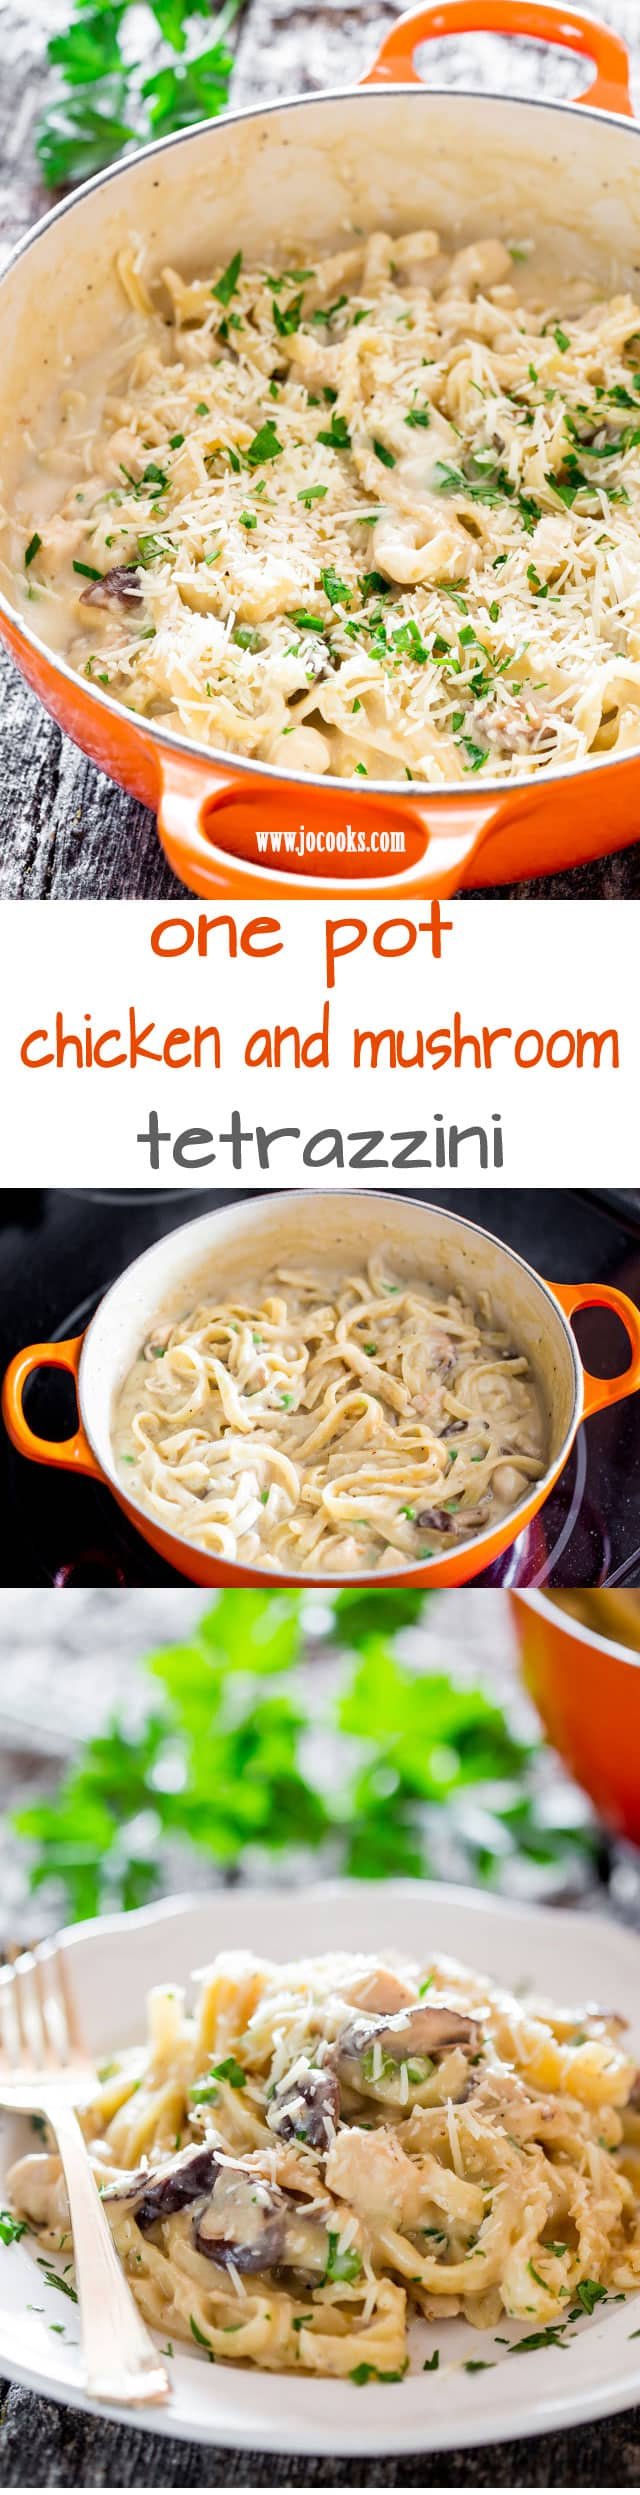 One Pot Chicken and Mushroom Tetrazzini - a simple but creamy, rich and delicious pasta dish with chicken and mushrooms ready in 35 minutes. Perfect for busy weeknights.  #tetrazzini #onepot